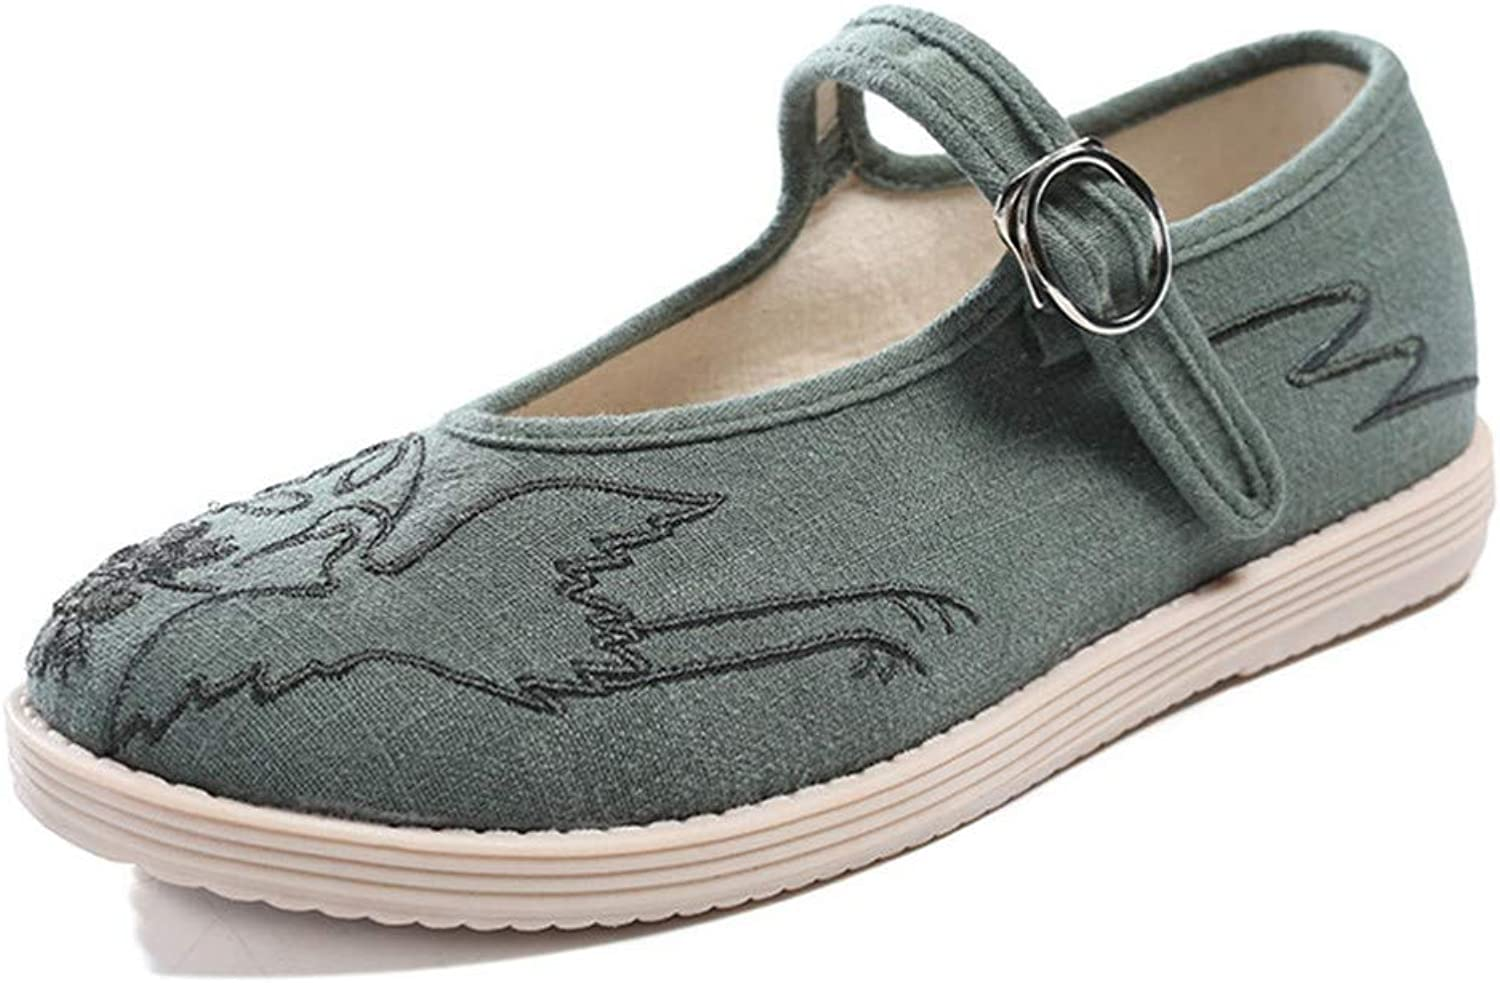 Cloth shoes, Women's shoes, Embroidered shoes, Dancing shoes-YU&Xin